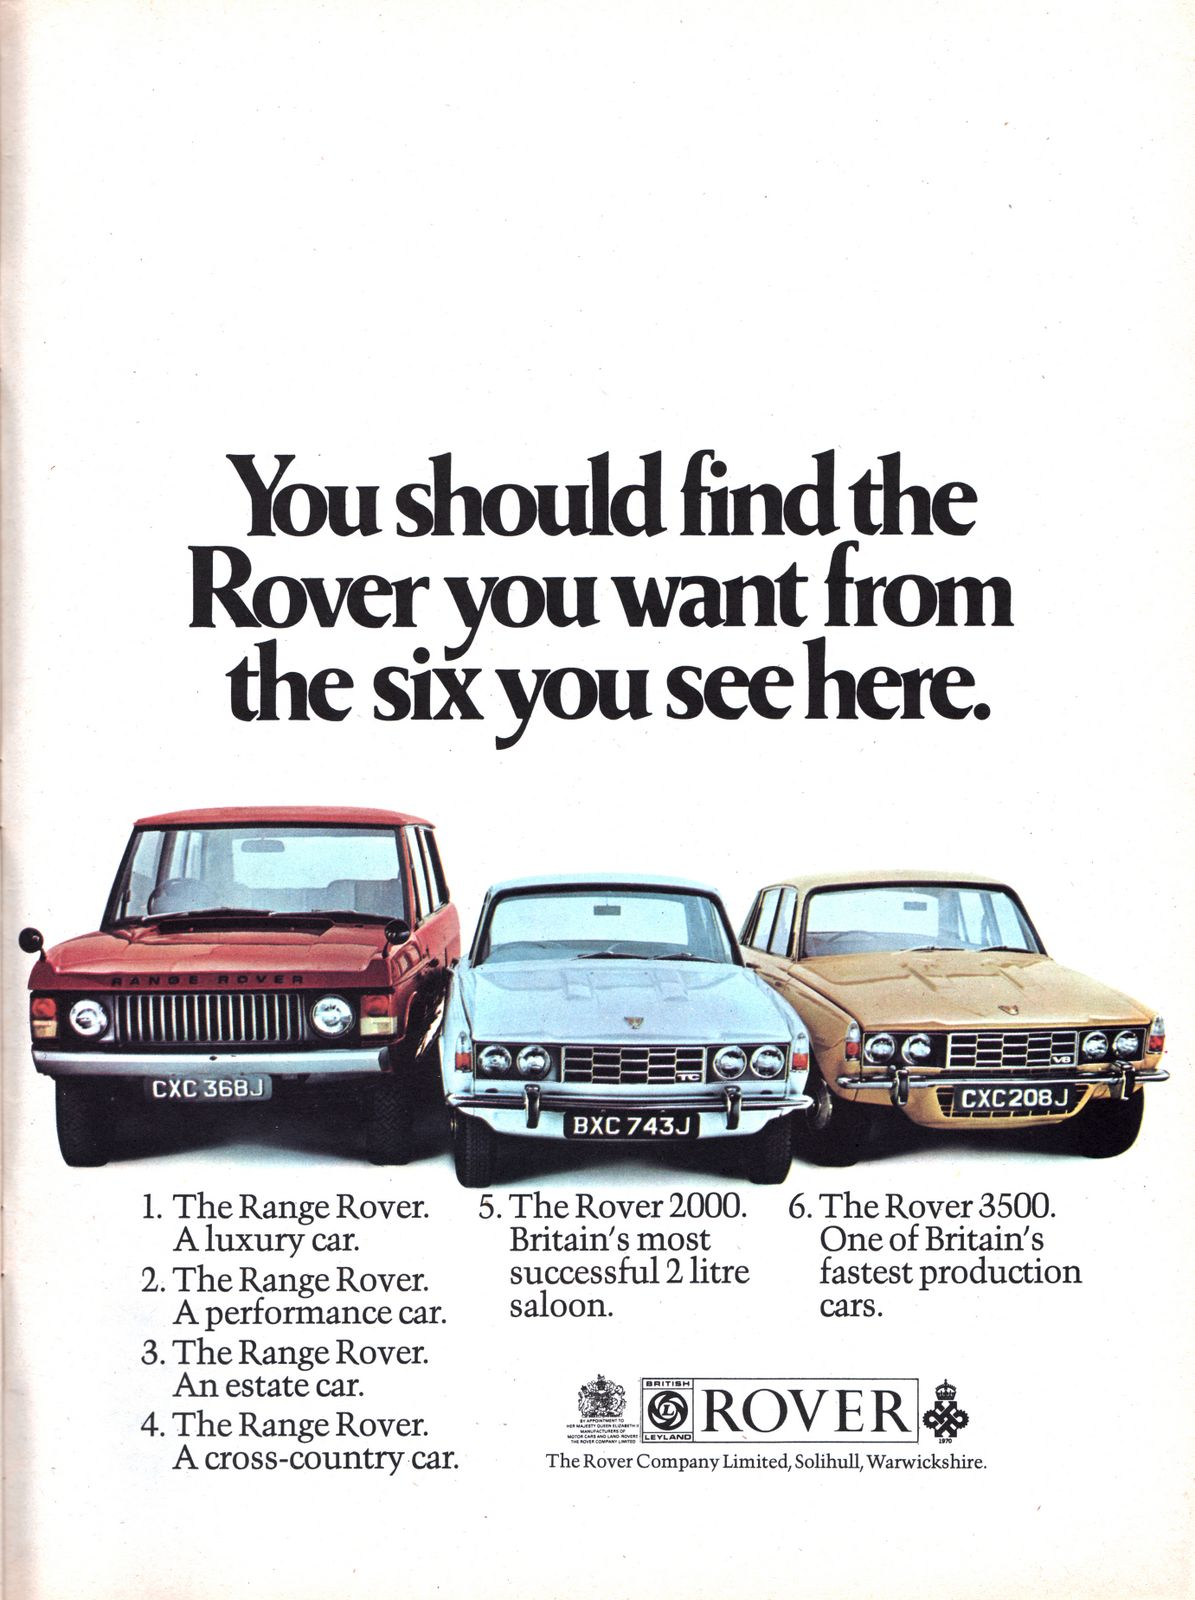 Historical Rover Advertisements Rover Car Club Of Australia